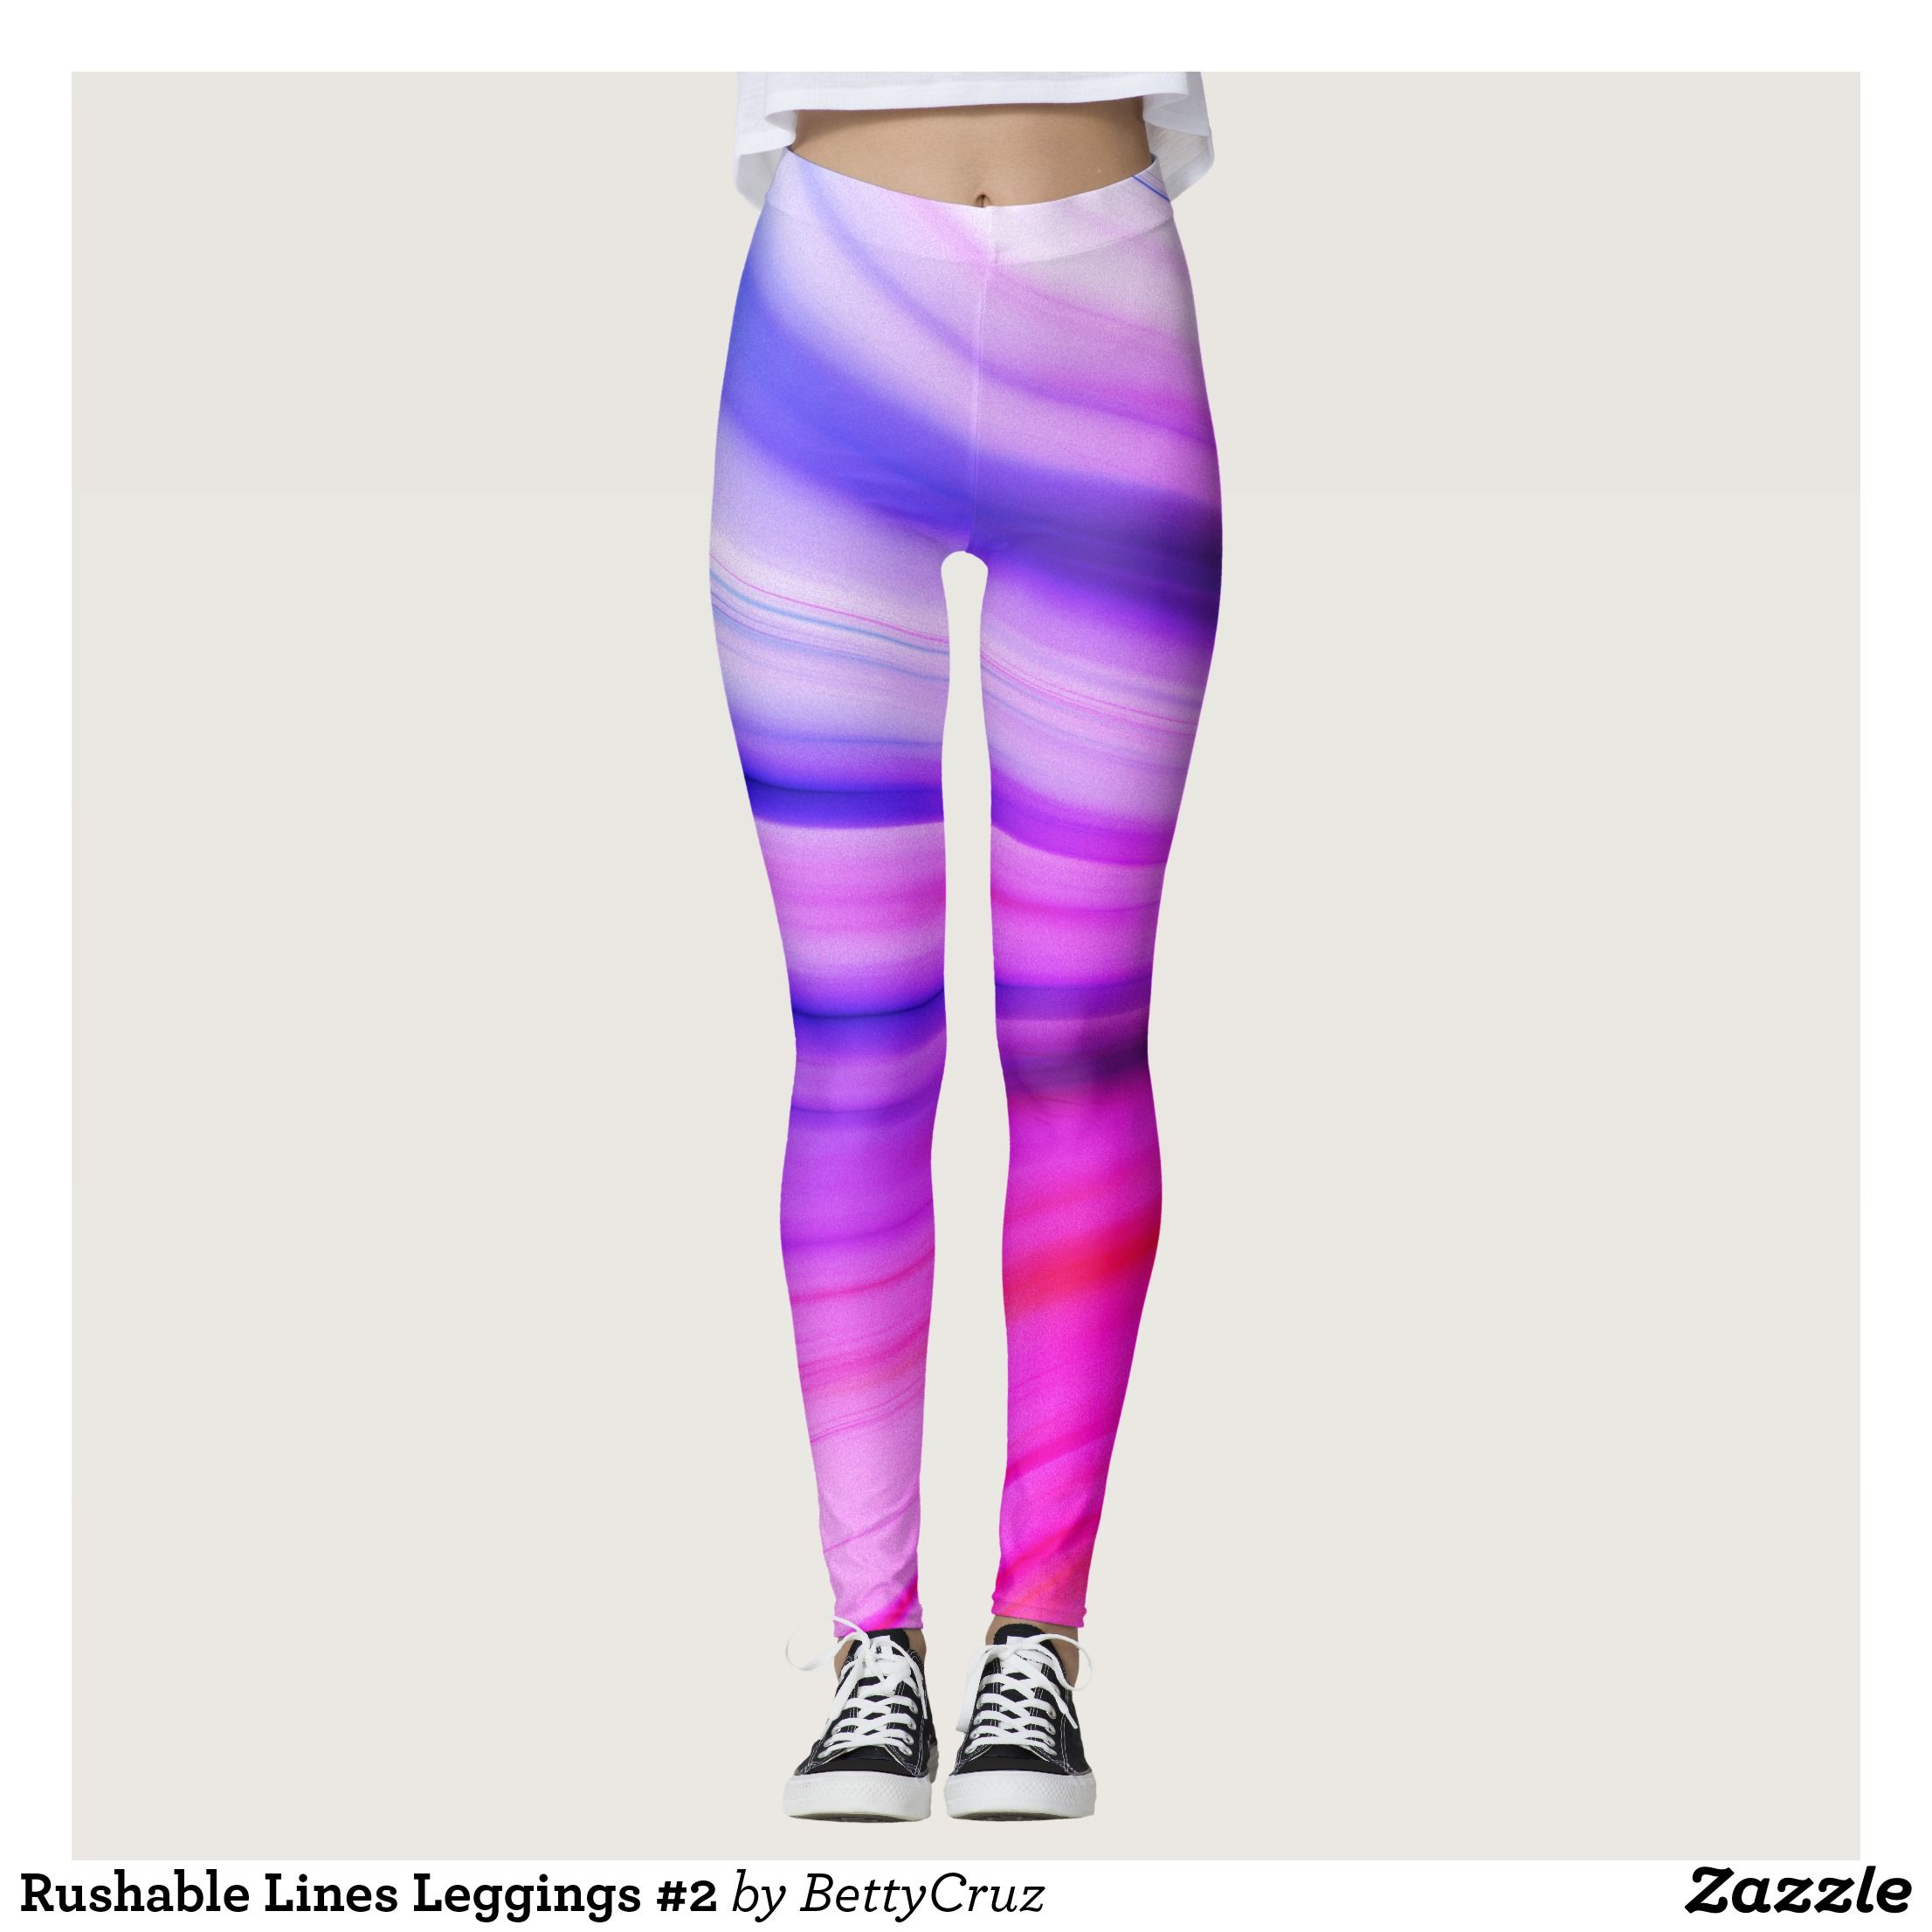 ae36b26052604e Rushable Lines Leggings #2 : Beautiful #Yoga Pants - #Exercise Leggings and  #Running Tights - Health and Training Inspiration - Clothing for  #Fitspiration ...